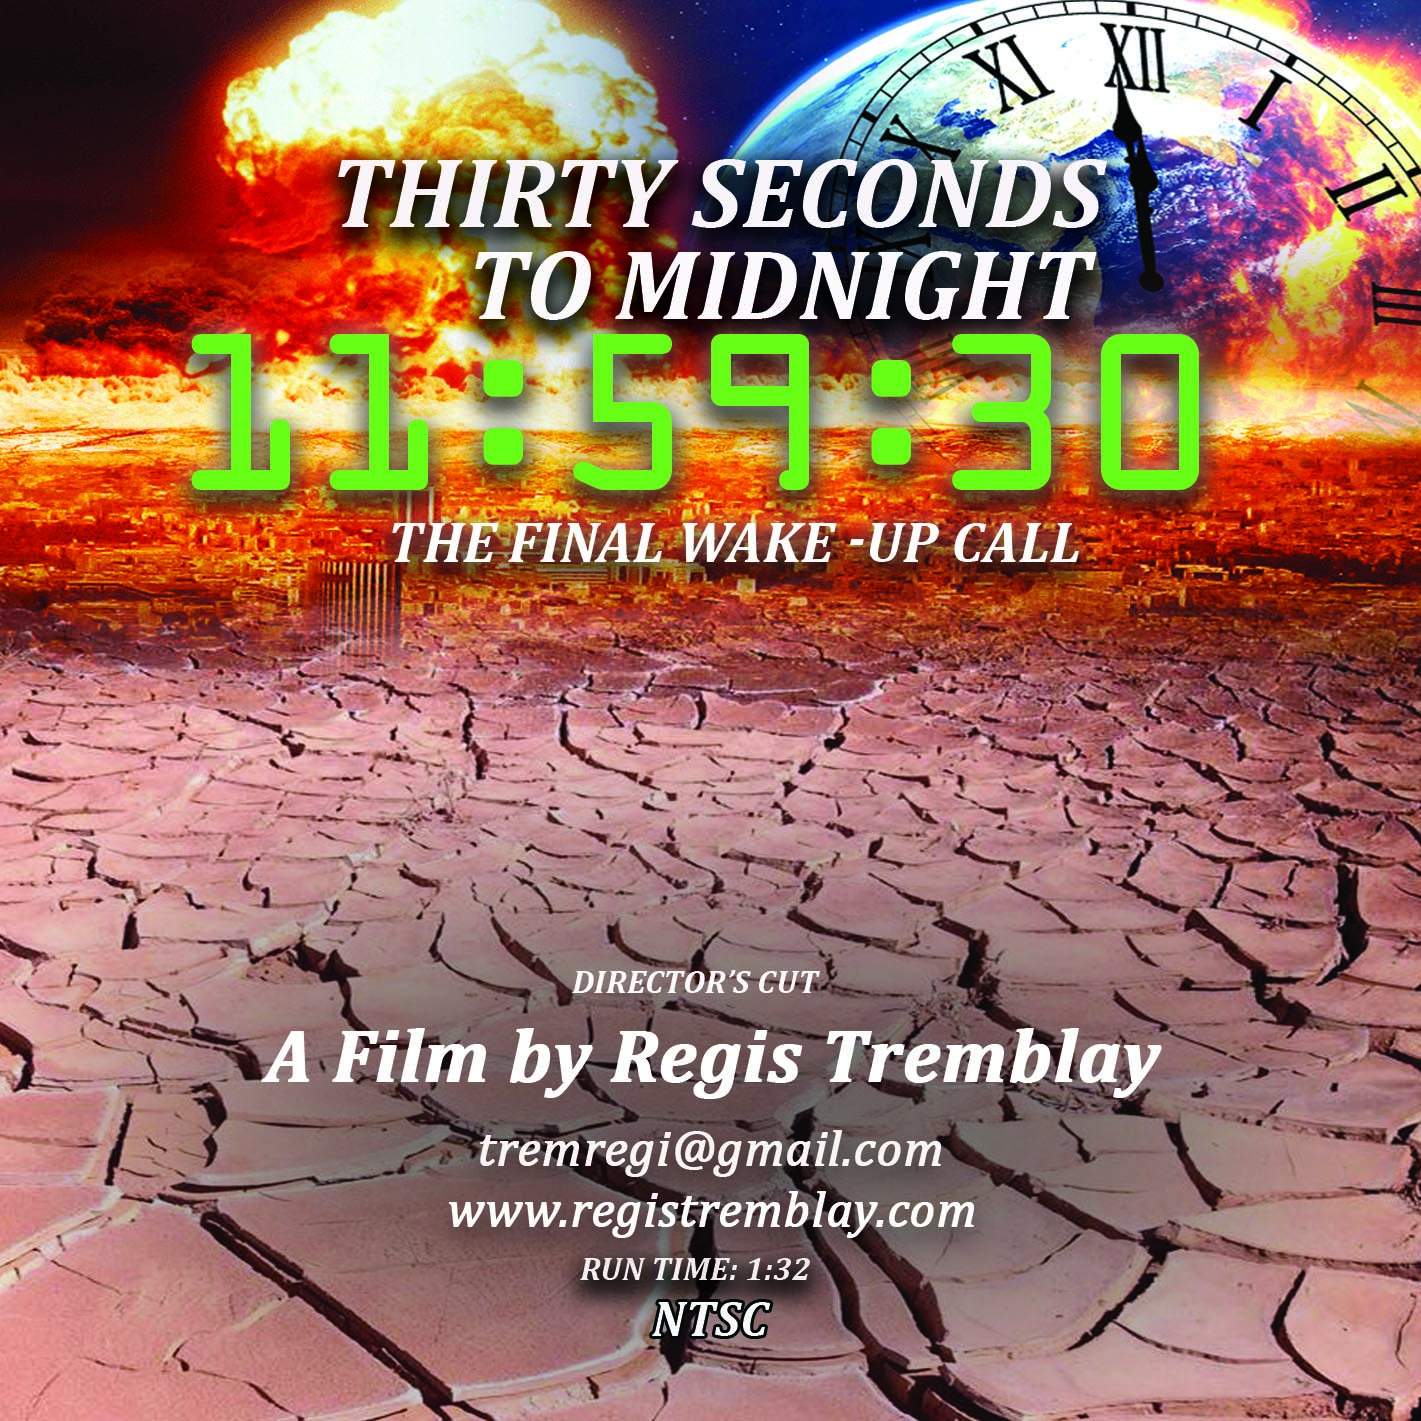 Thirty Seconds to Midnight Film Poster